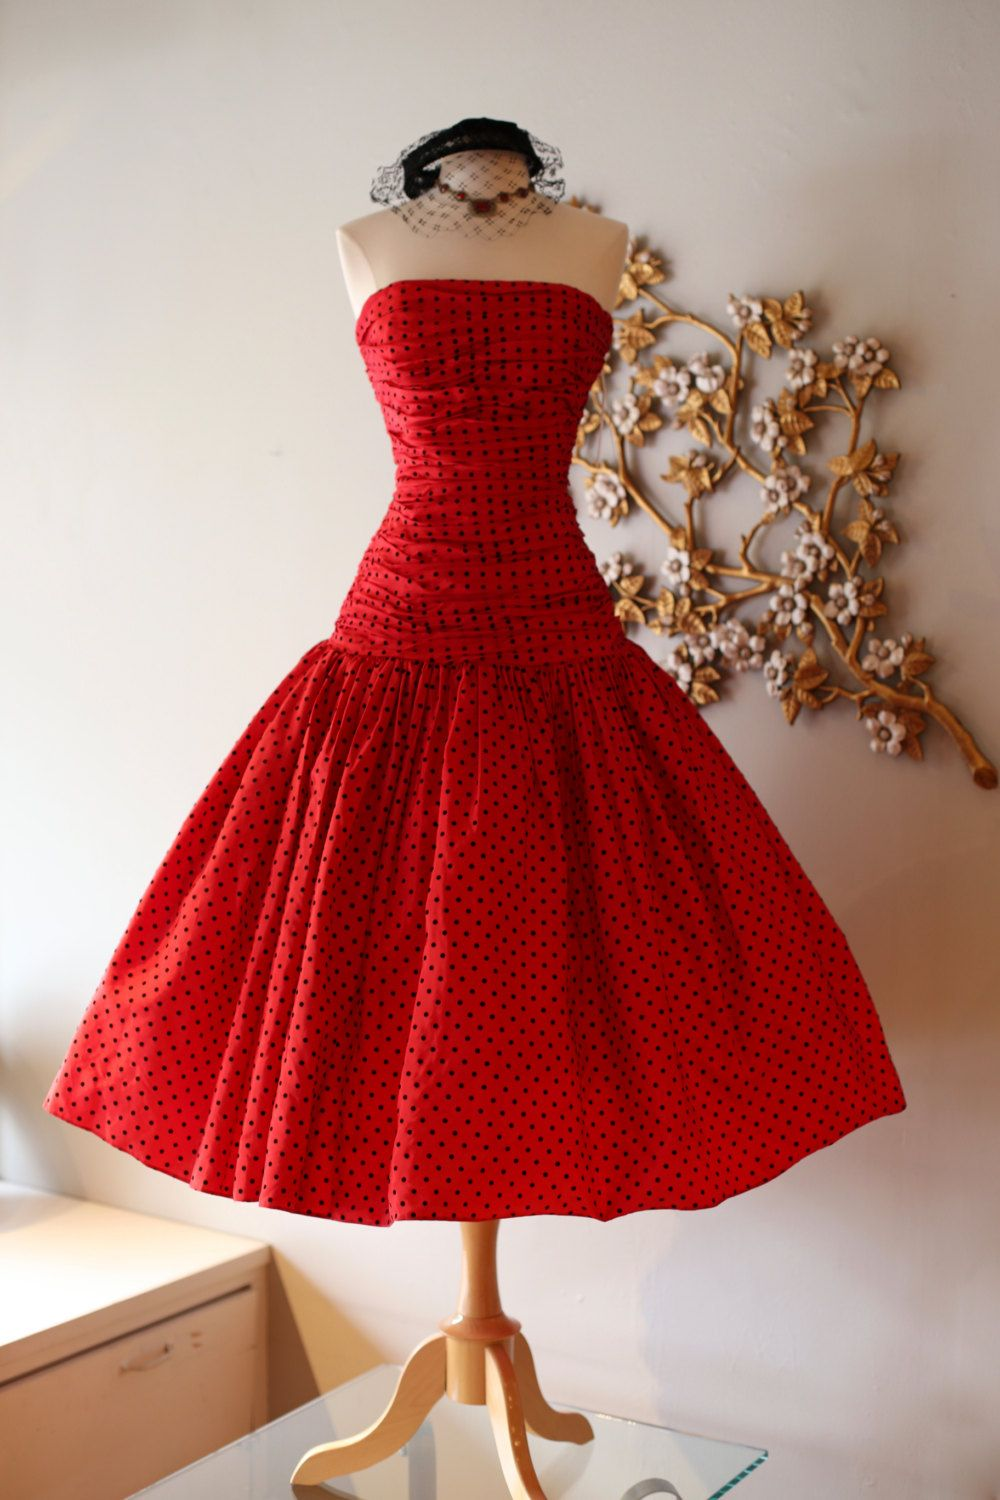 Reserved Fabulous 50s Style Red Prom Dress Vintage 80s Etsy Prom Dresses Vintage Red Prom Dress 50s Fashion Dresses [ 1500 x 1000 Pixel ]